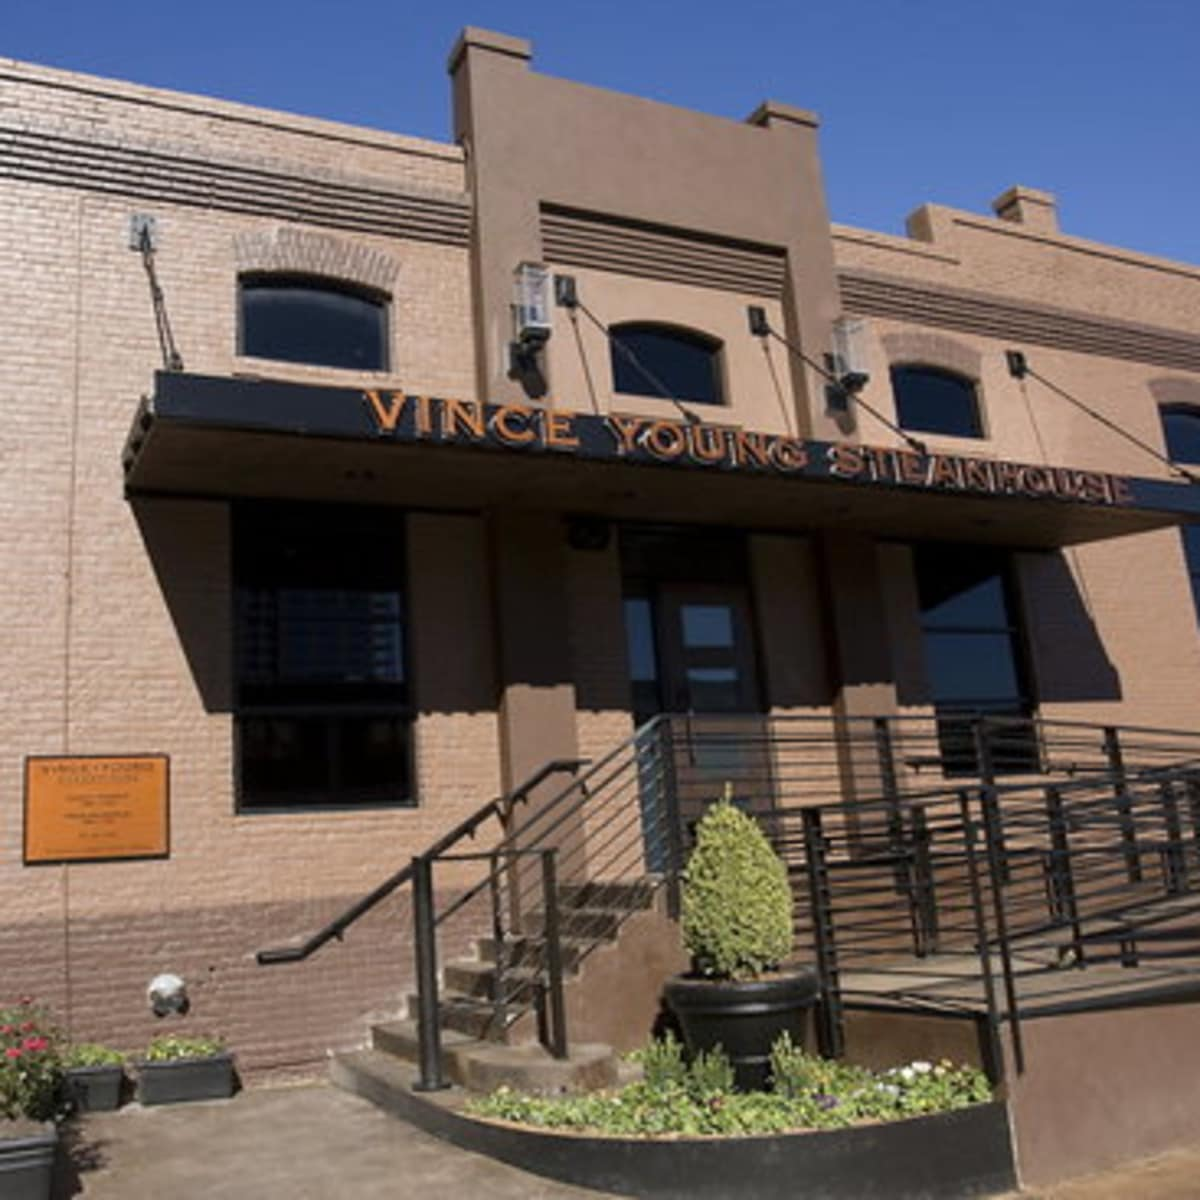 Vince Young Steakhouse in Austin, Texas.